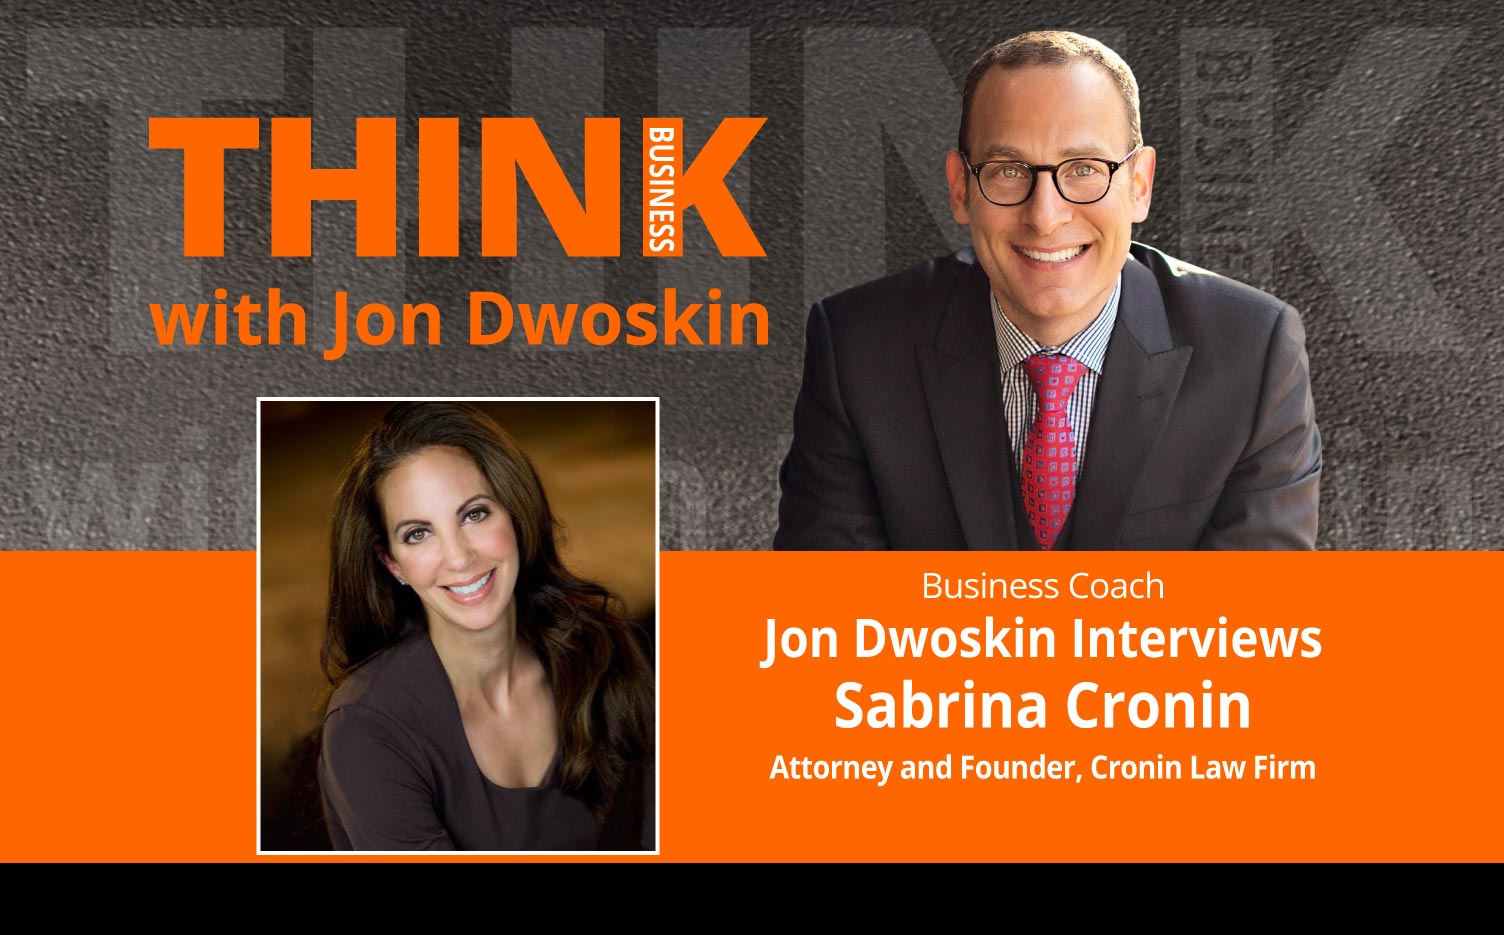 THINK Business Podcast: Jon Dwoskin Interviews Sabrina Cronin, Attorney and Founder, Cronin Law Firm